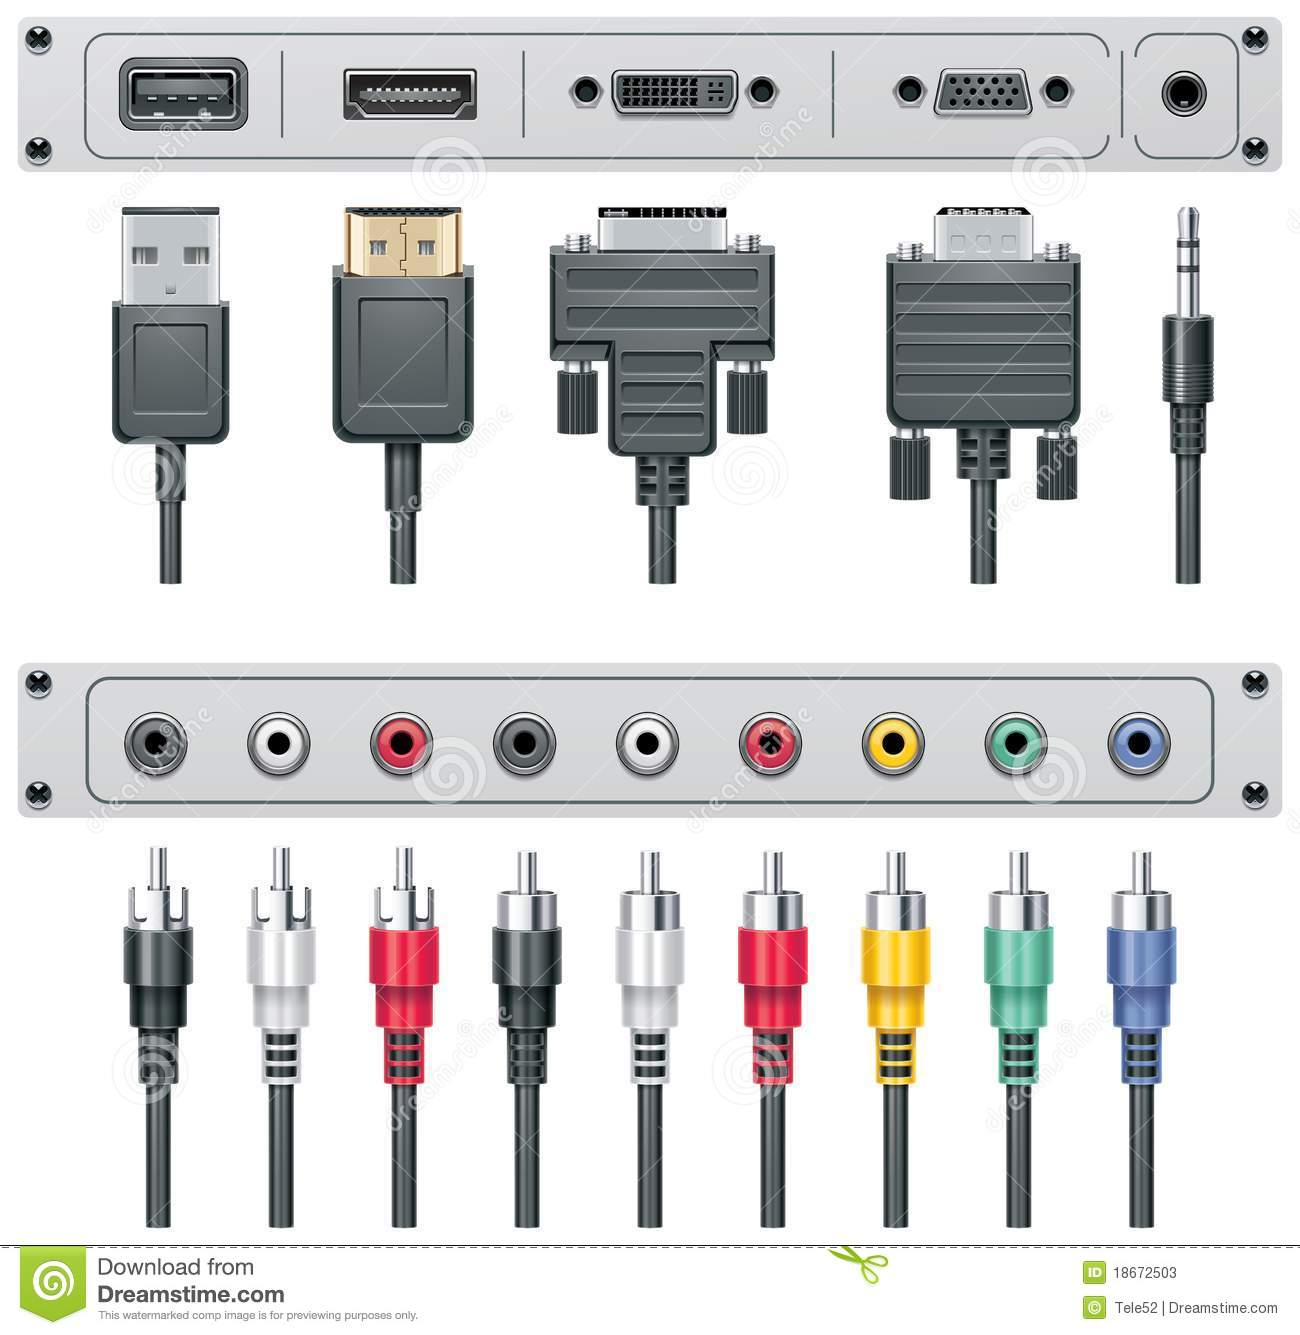 Product 30r4 0100rd together with 80490 Hdmi Cable Pinout additionally Audio Video Rg59a U Type F To Rca Plug Coaxial Cable Assemblies 75 Ohm Transmission Line With Type F To Rca Male Connectors moreover Fotos De Stock Conectores Video E Audio Do Vetor Image18672503 additionally Stock Photo 4 Pin Cd Dvd Audio Connector Cable Image14689790. on types of audio video rca cables